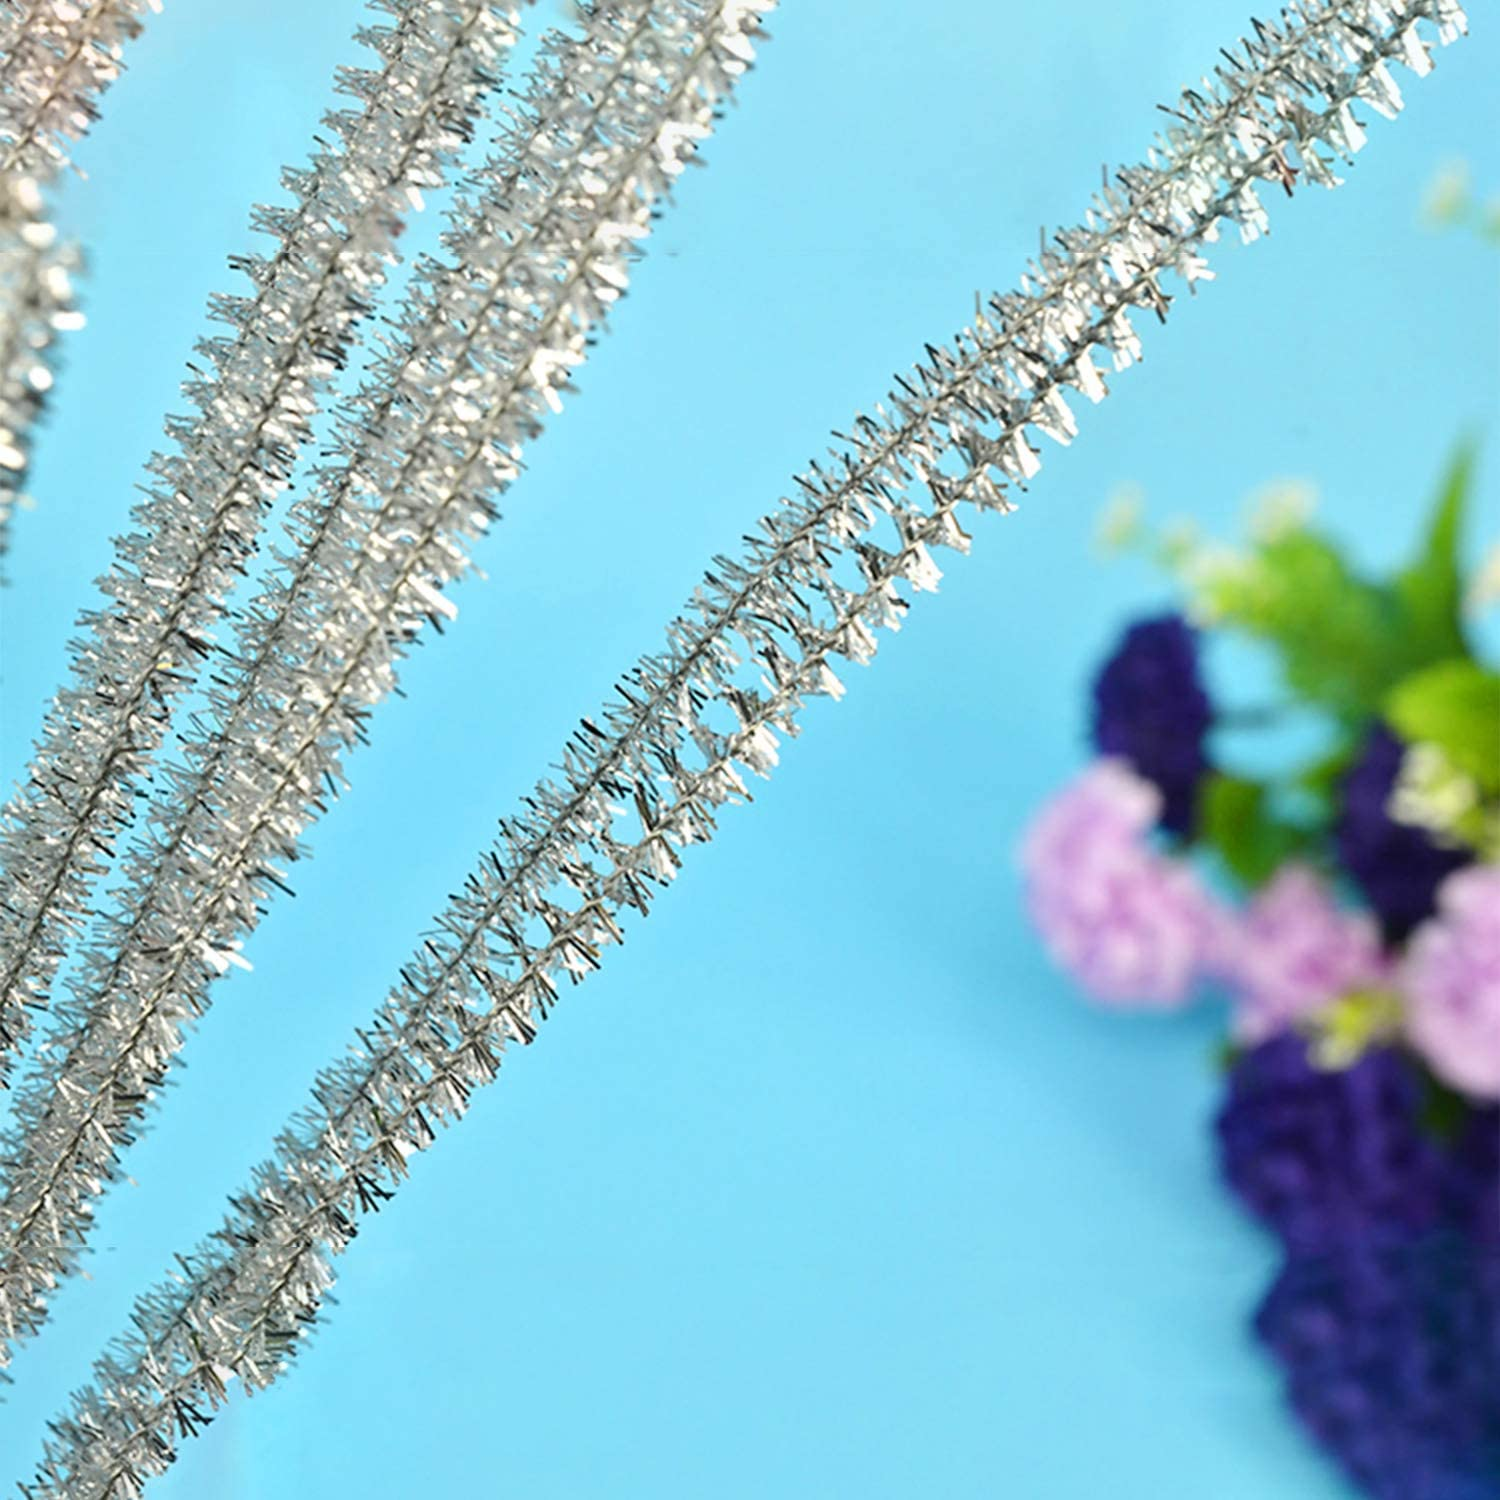 Waycreat 200 Pieces Pipe Cleaners Silver Chenille Stem for DIY Art Craft Decorations 6mm x 12 Inch